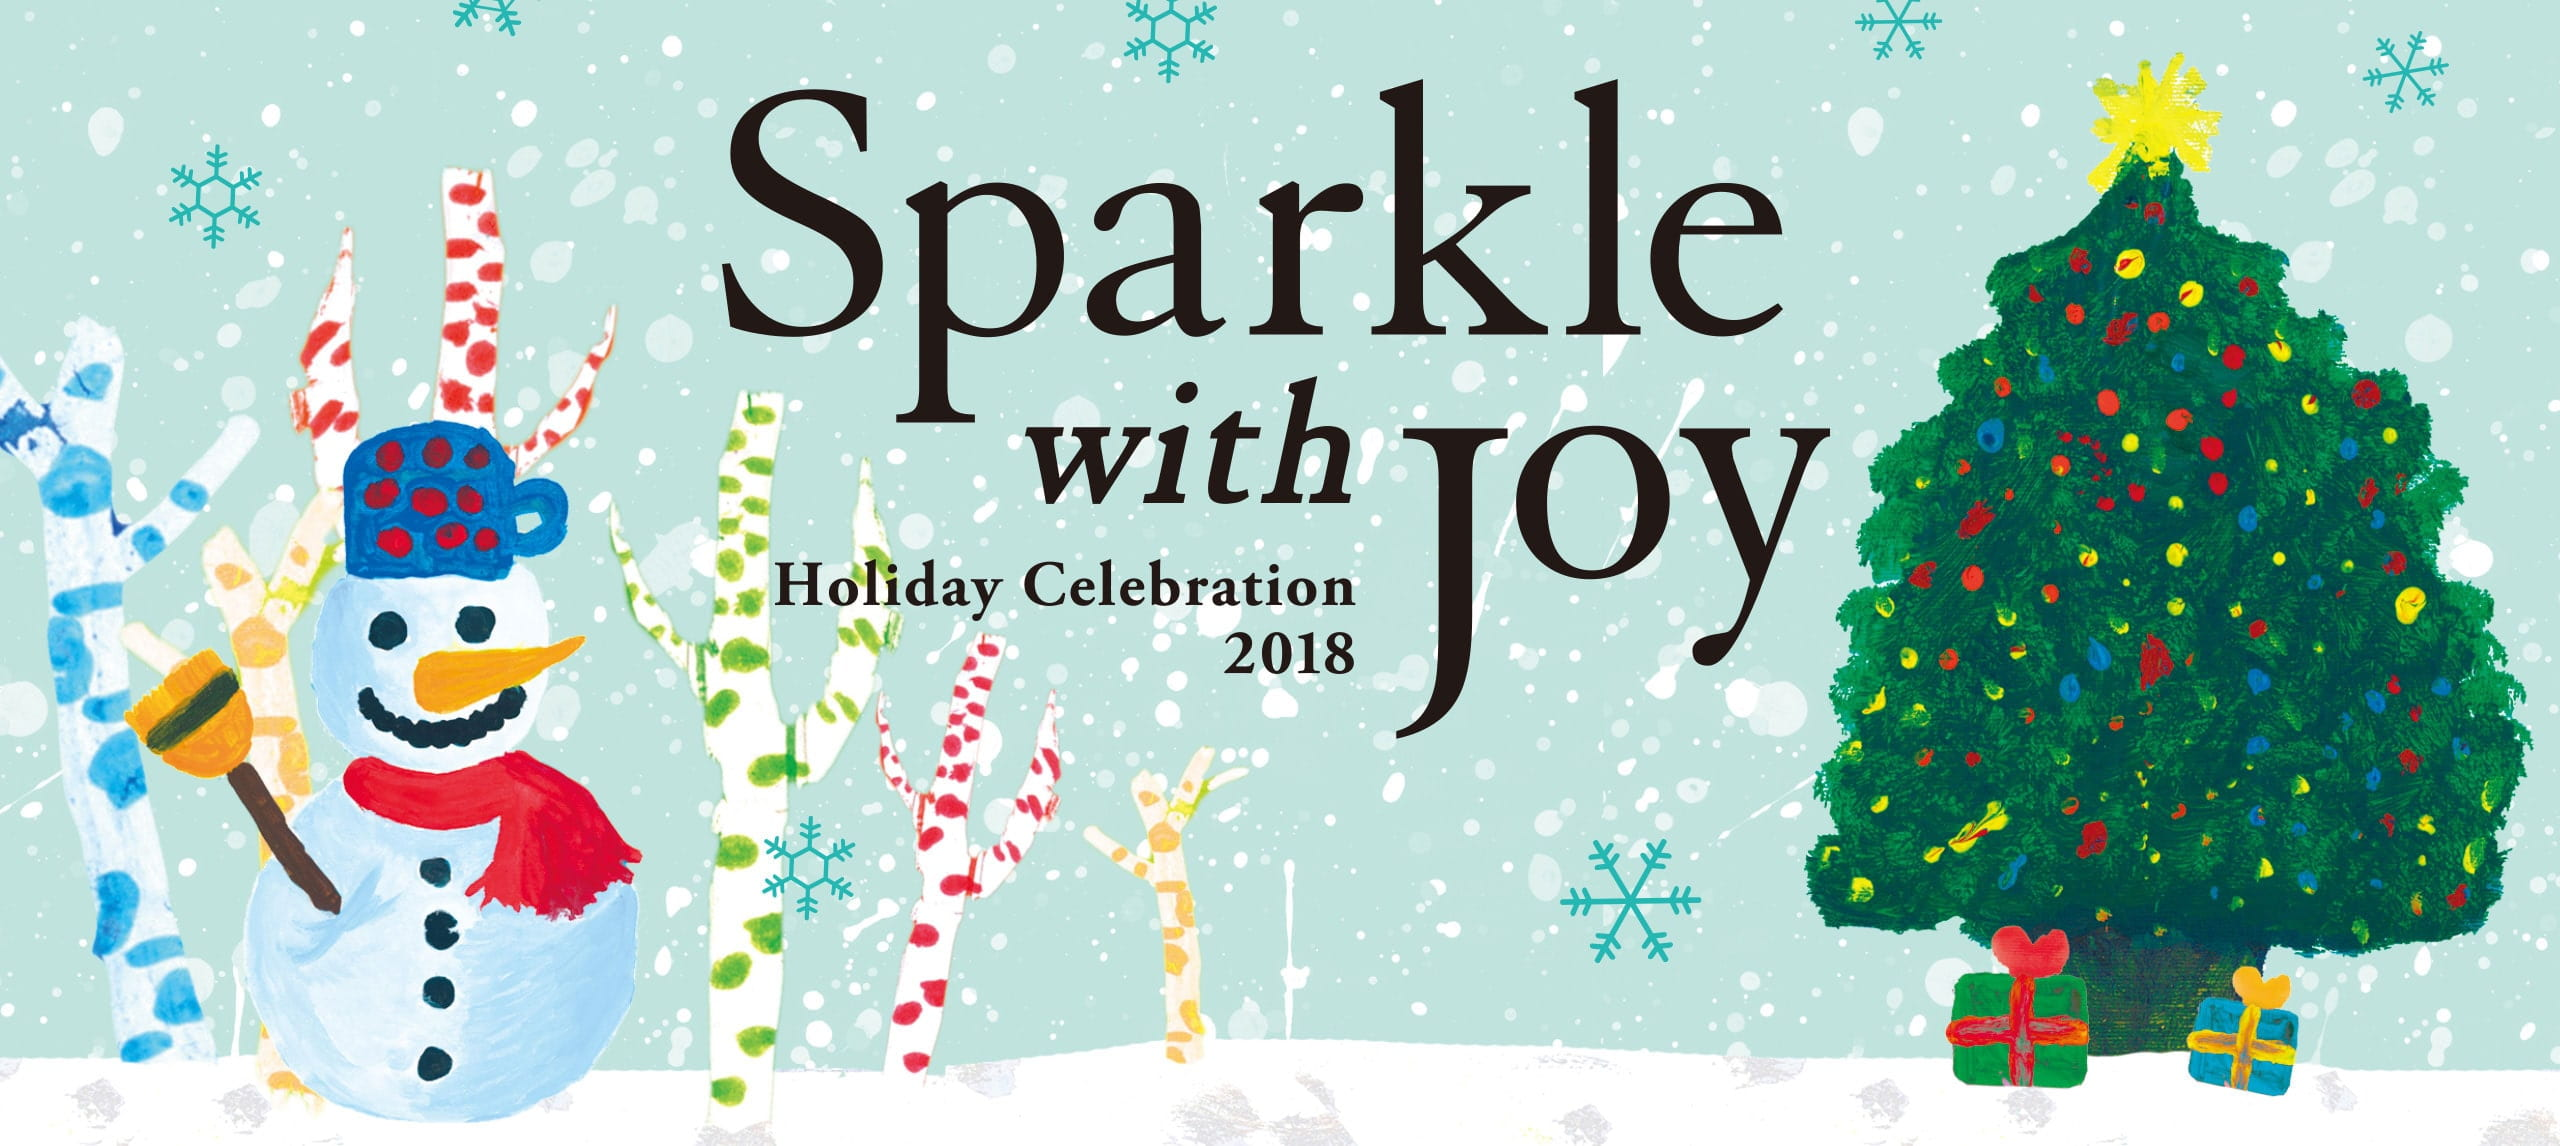 Sparkle with Joy